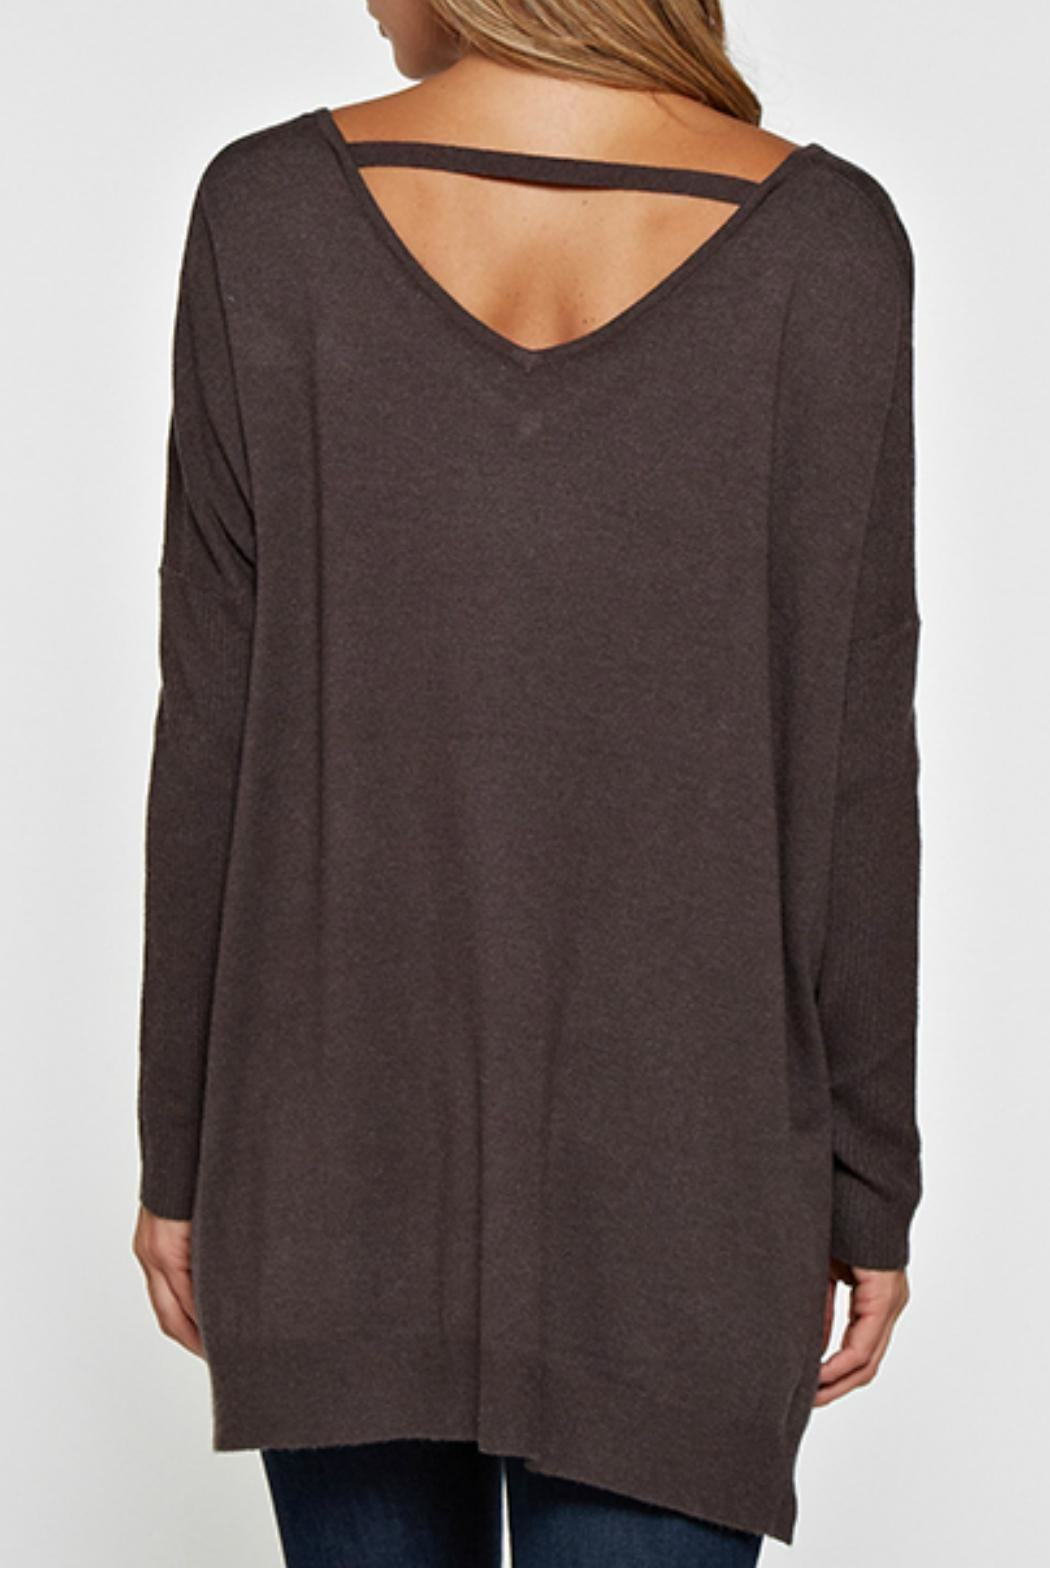 Lovestitch Lightweight Oversized Sweater - Side Cropped Image